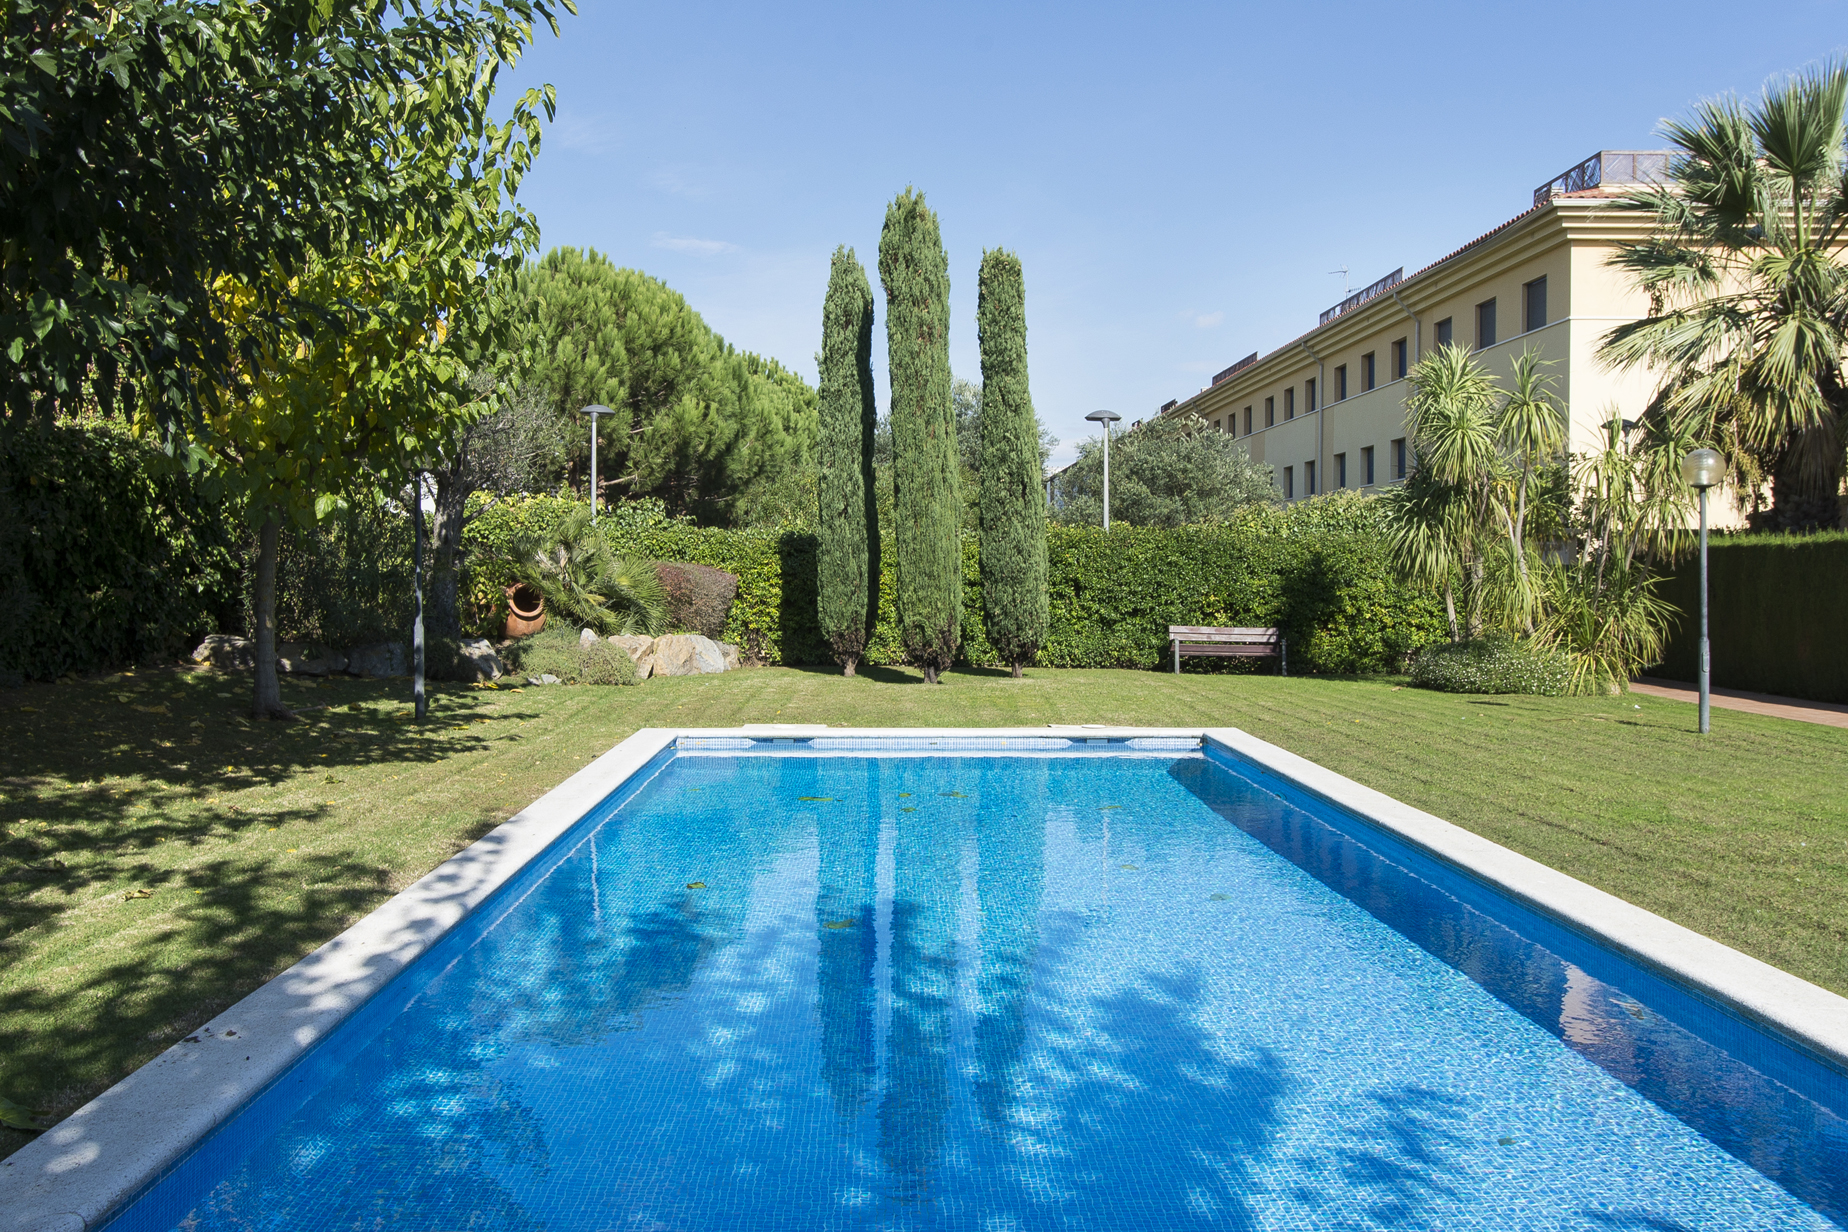 Apartment for Sale at Elegant apartment a few metres from the beach of Sant Pol S'Agaro, Costa Brava, 17248 Spain